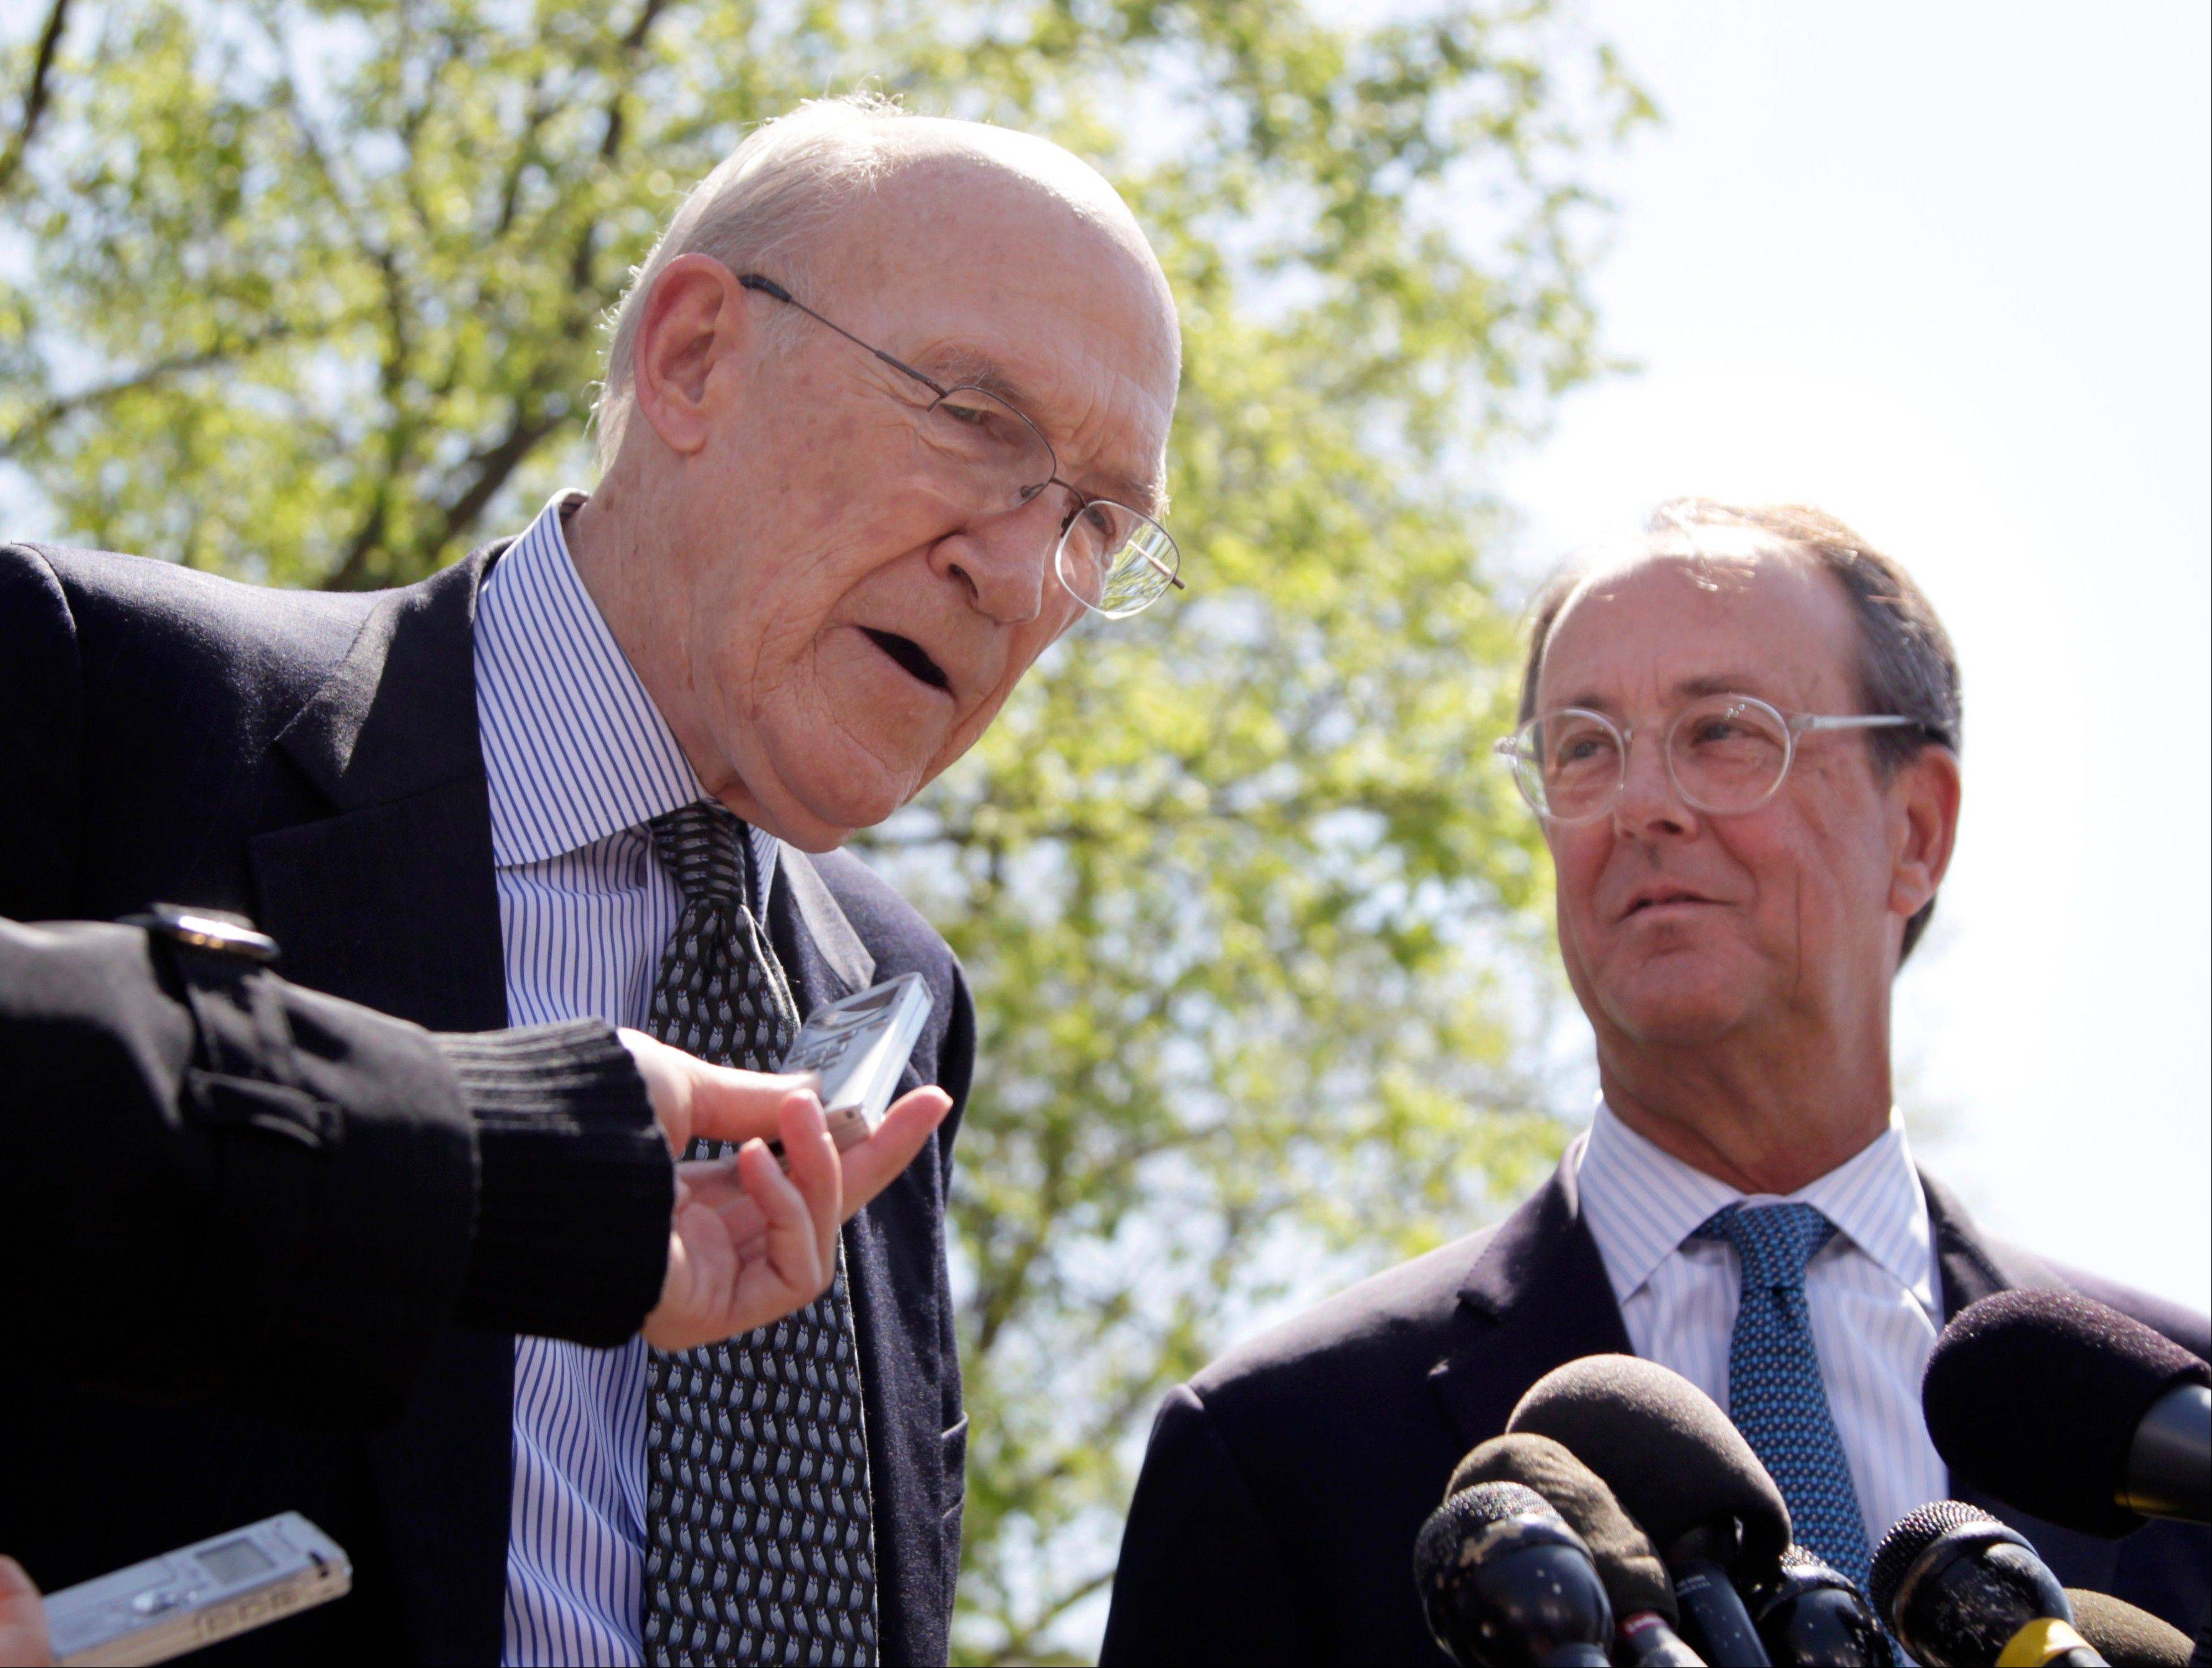 Erskine Bowles, right, Alan Simpson, co-chairmen of the president�s deficit reduction commission, are seen outside the White House in this file photo from April 14, 2011. Lobbyists, advocates and trade groups are fighting fight to shape the government�s response to the looming fiscal cliff.